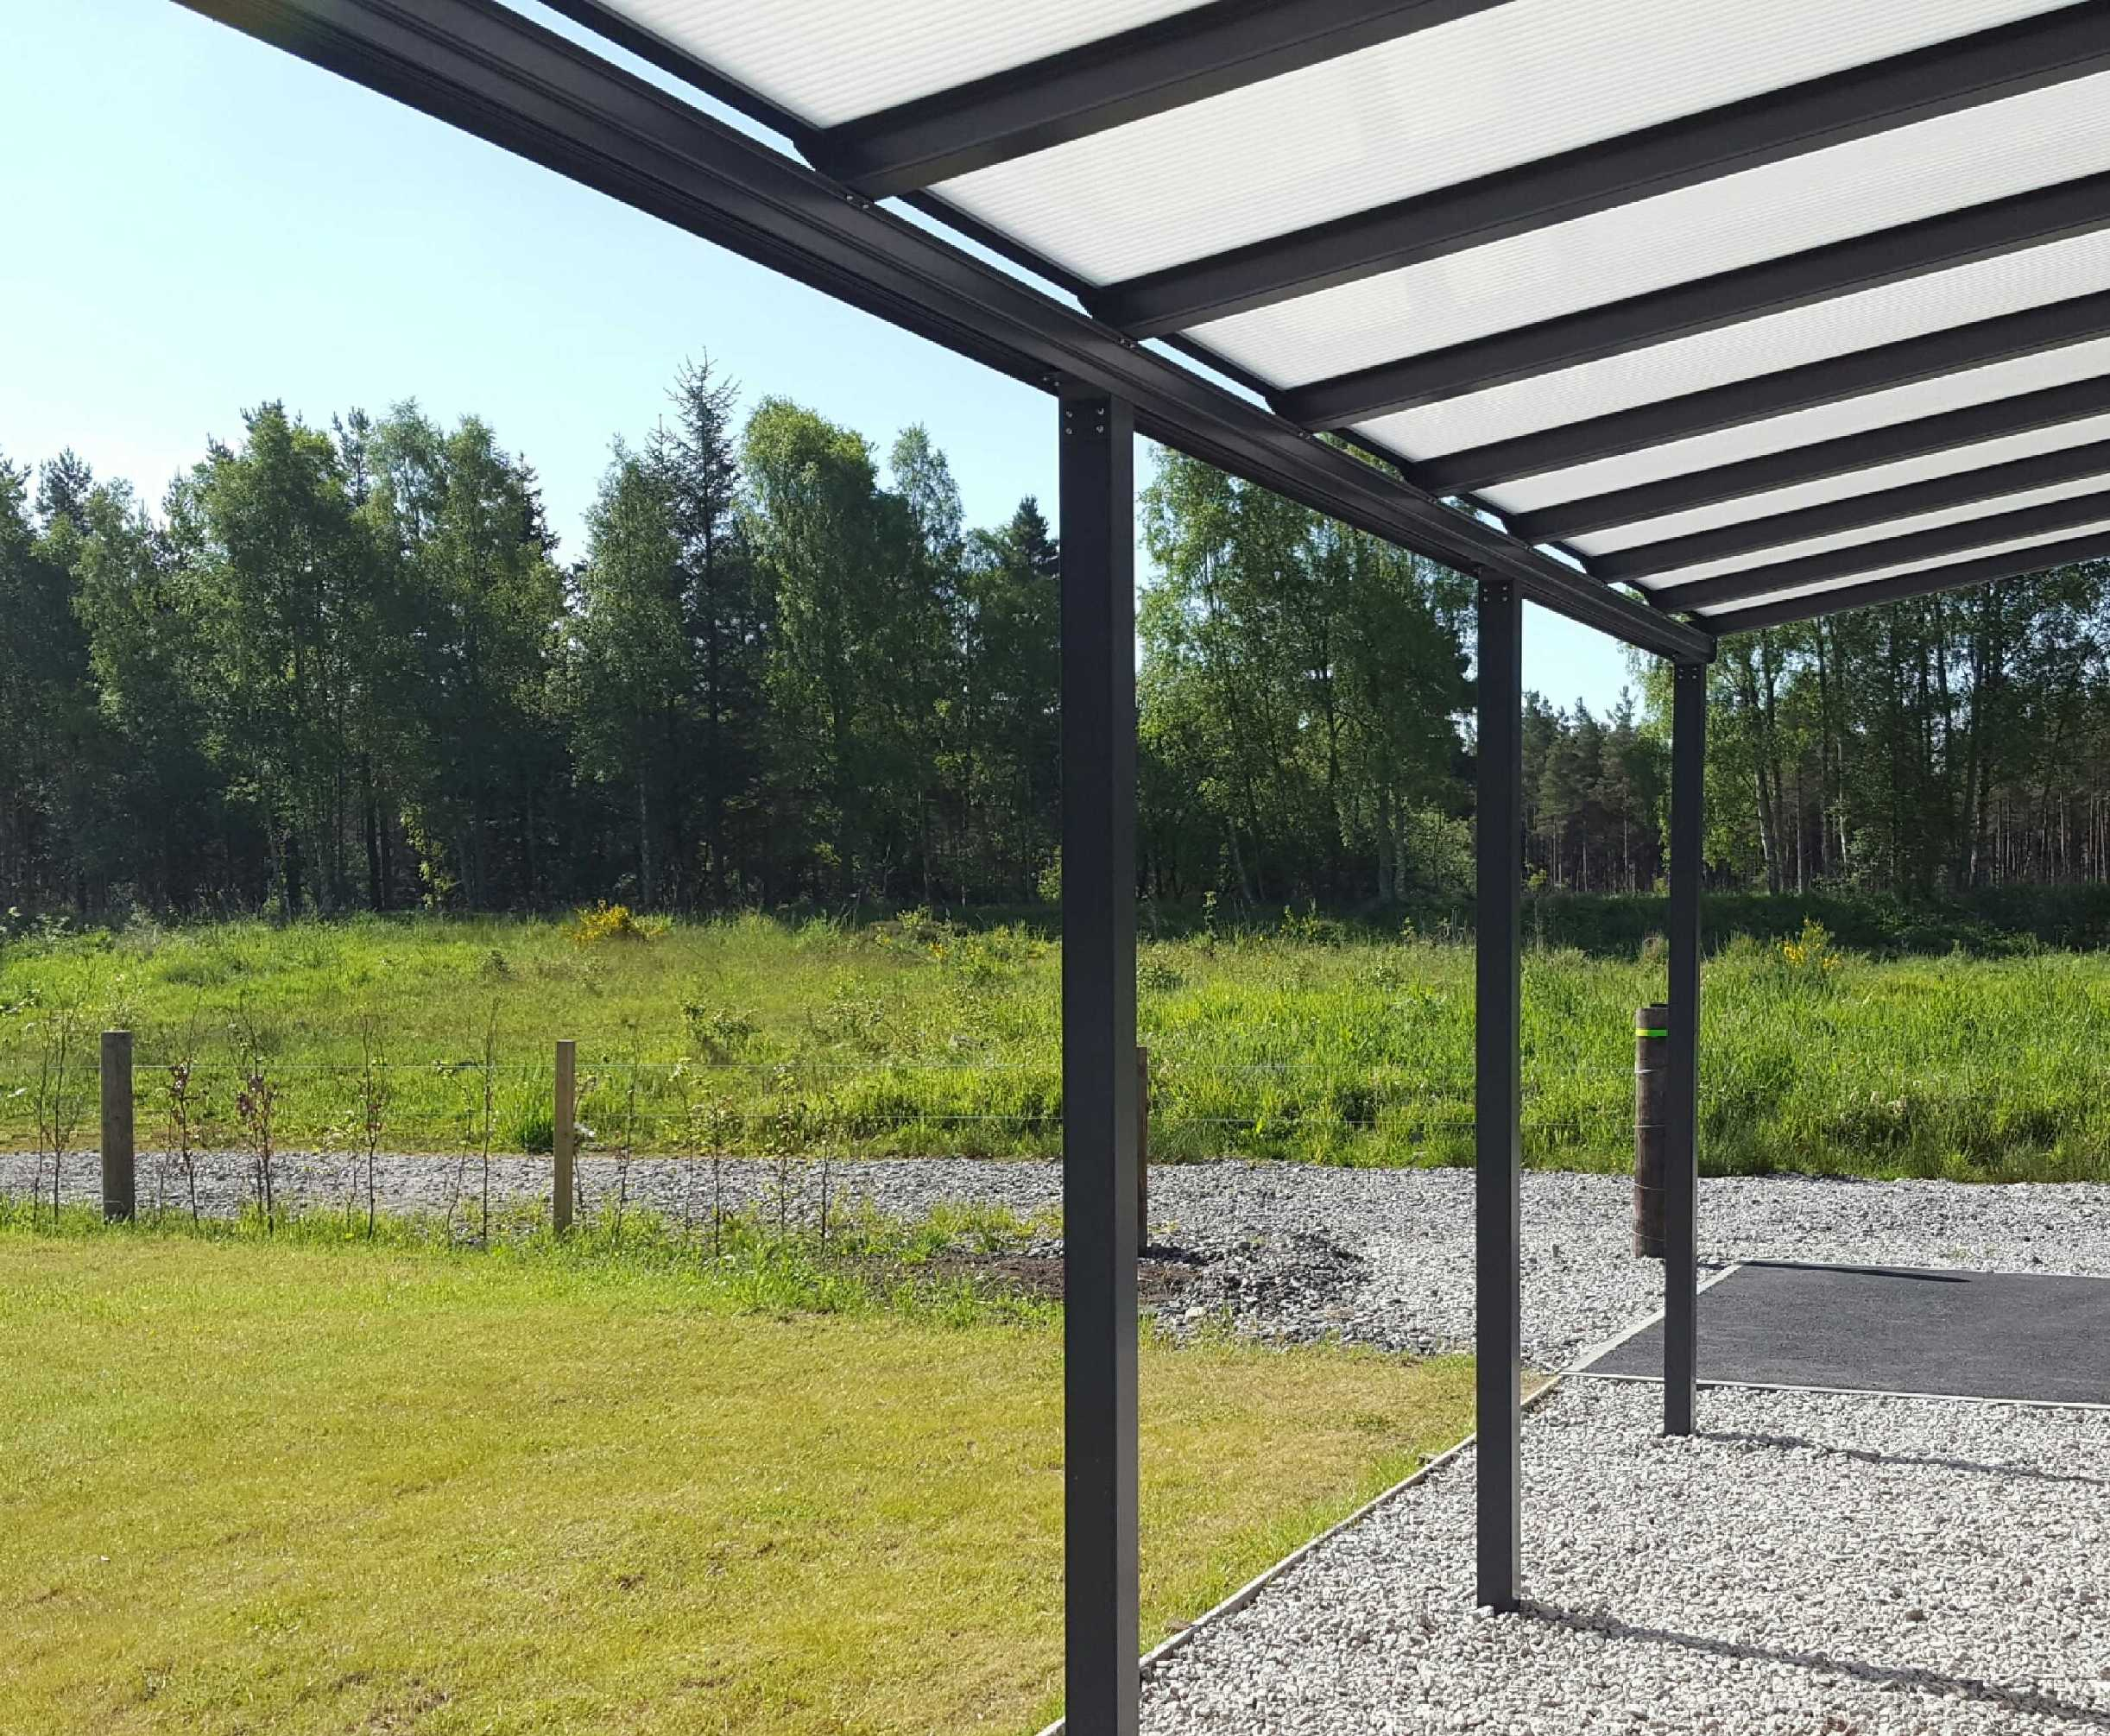 Omega Smart Lean-To Canopy, Anthracite Grey, 16mm Polycarbonate Glazing - 6.0m (W) x 3.5m (P), (3) Supporting Posts